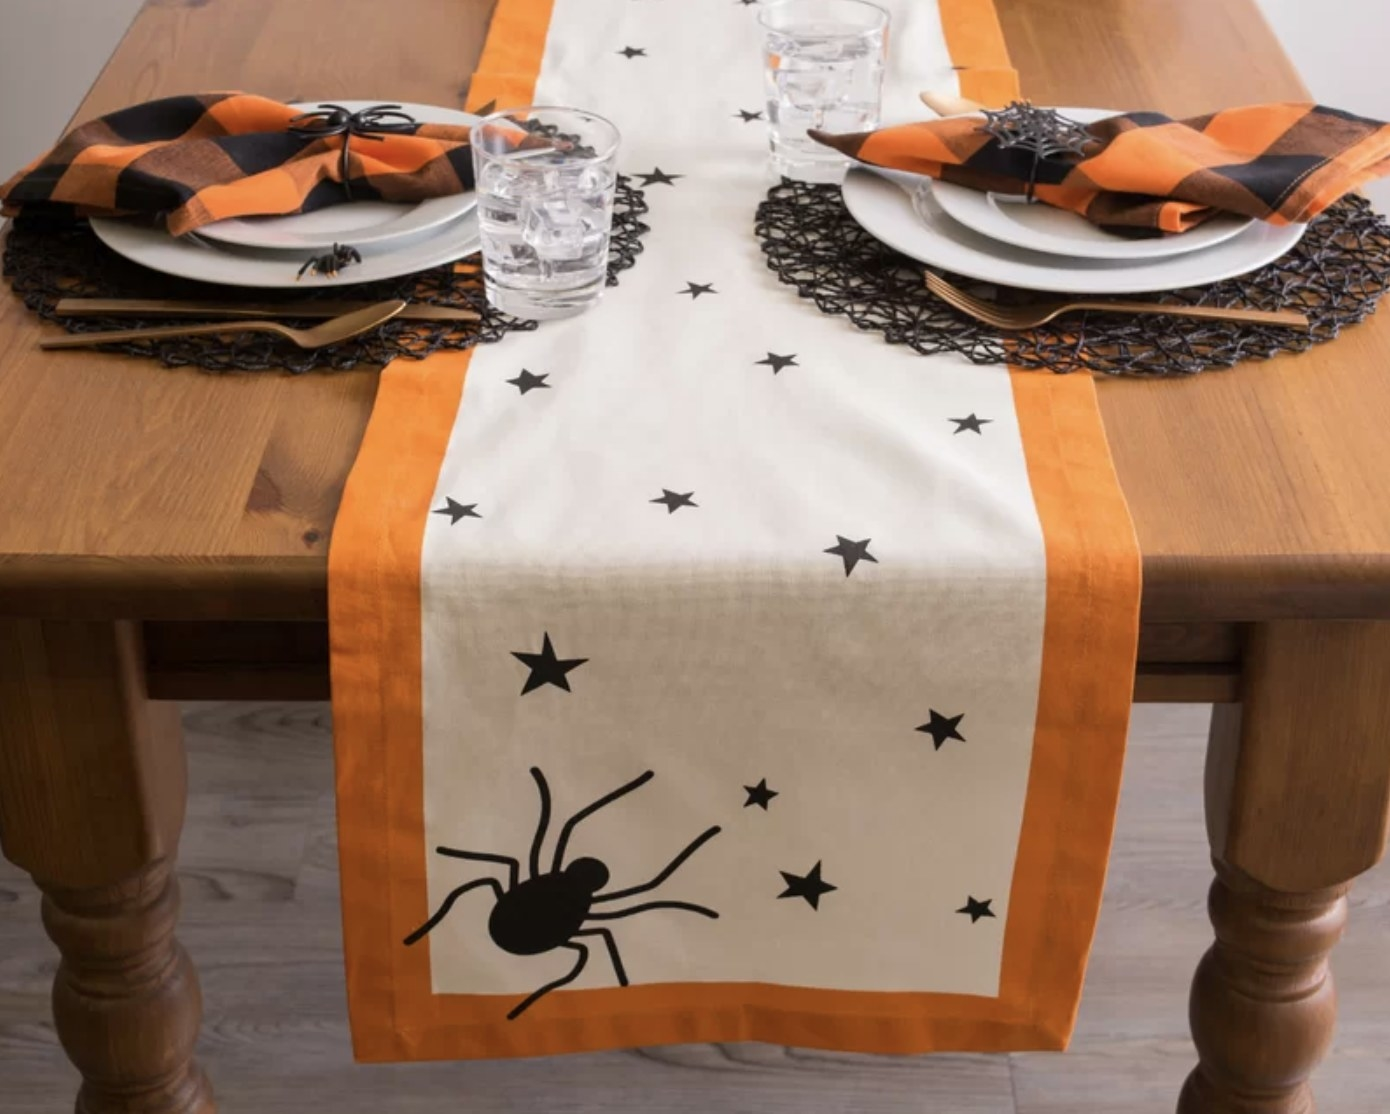 The table runner is all white with an orange border and one large black spider and many mini black stars